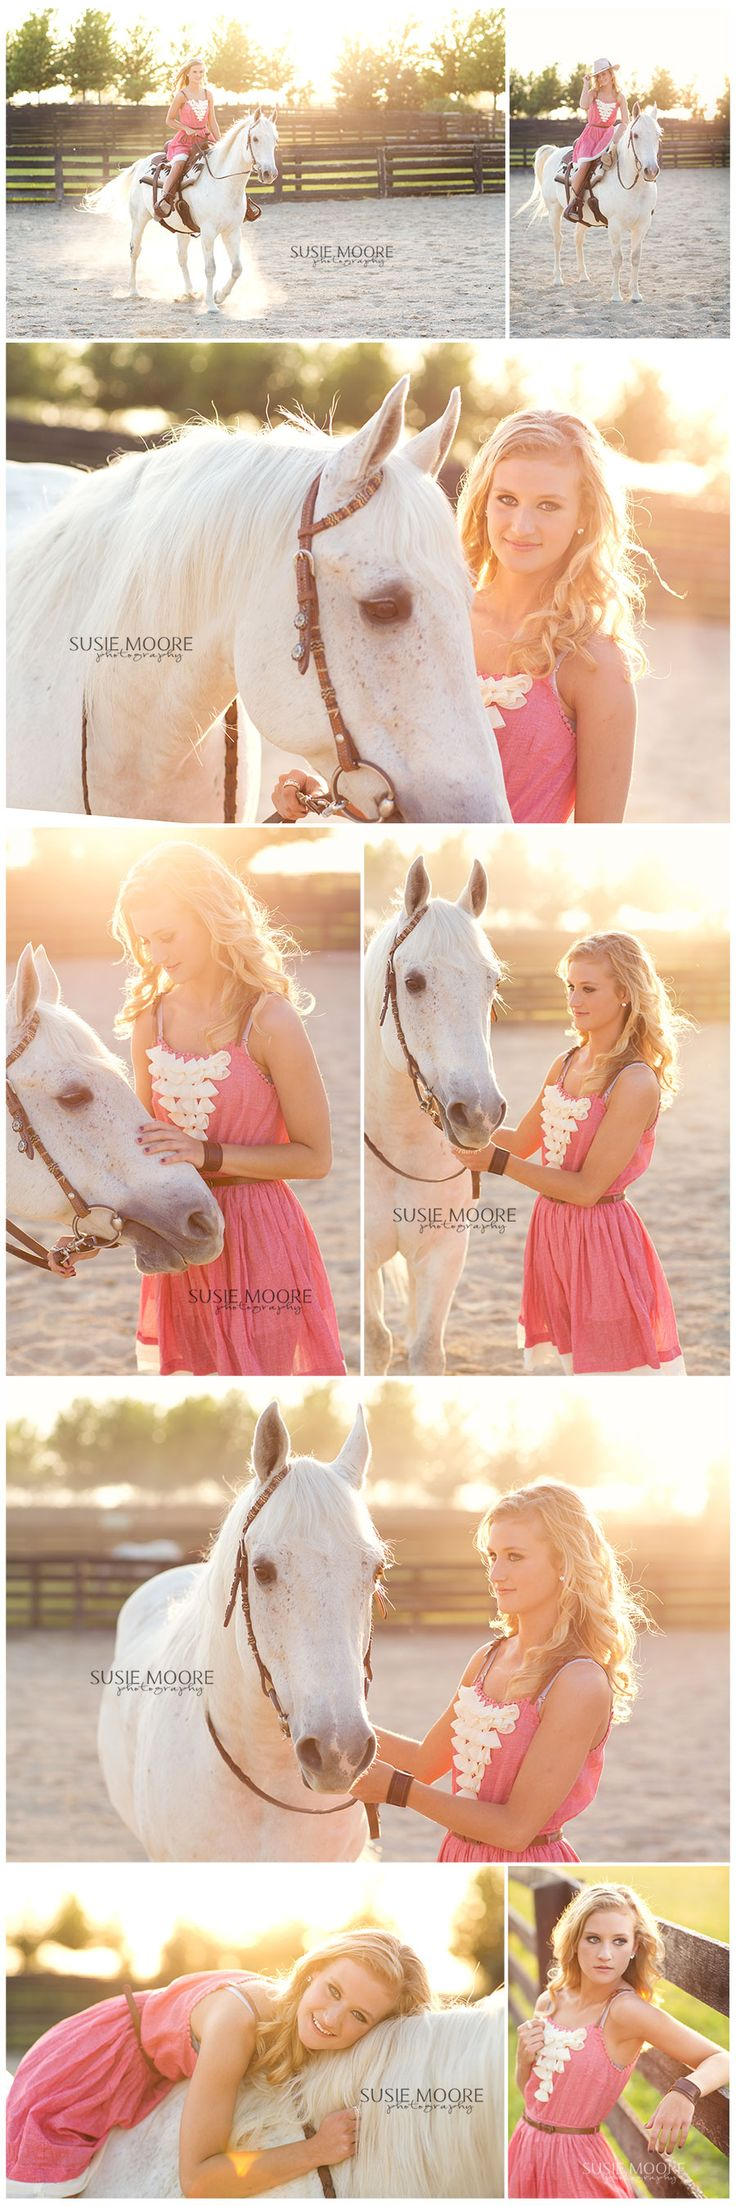 Samantha | Chicago Christian High School | Class of 2012 | IL Senior Photography